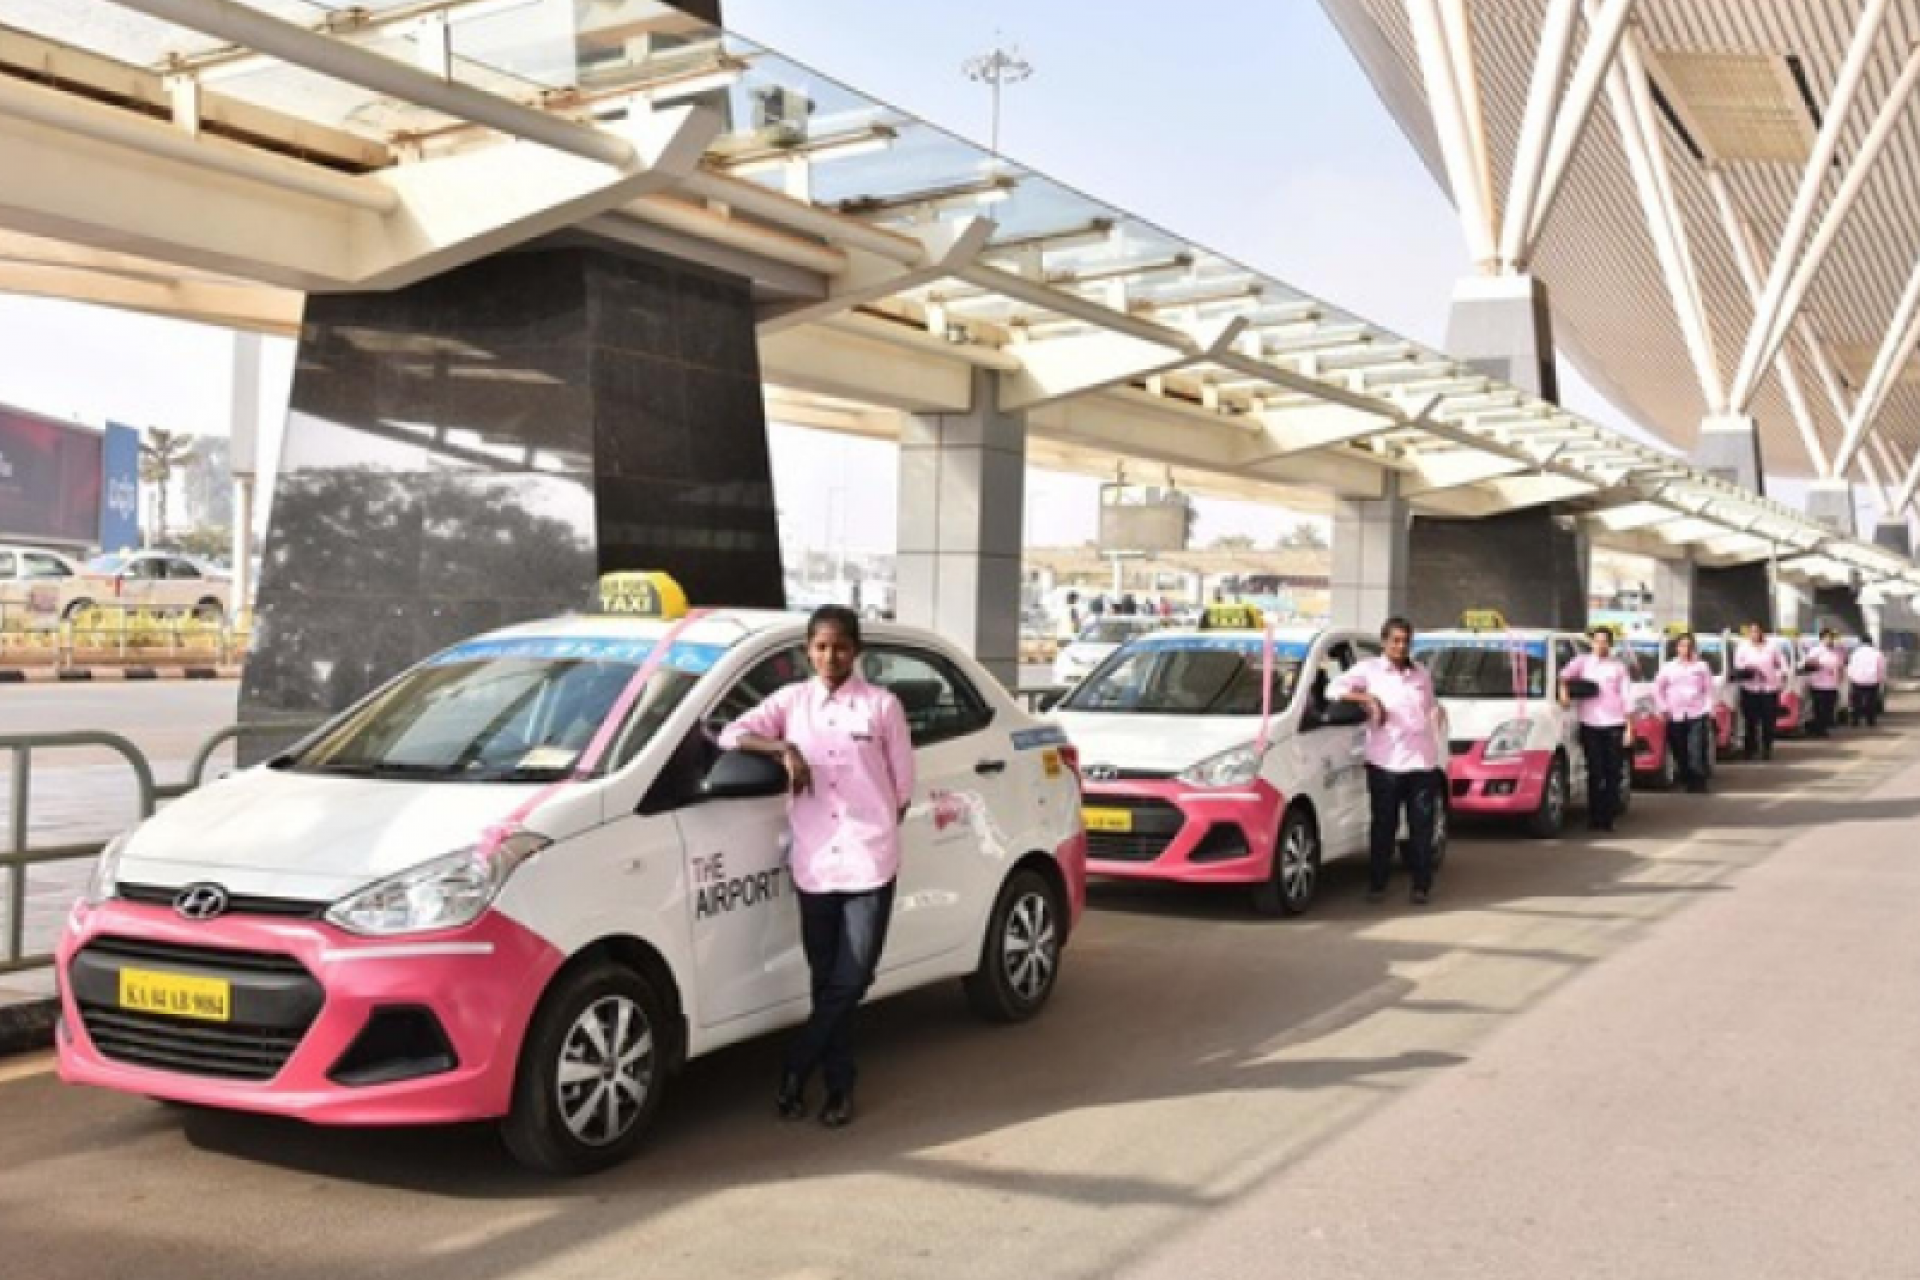 In India, a taxi appeared only for women